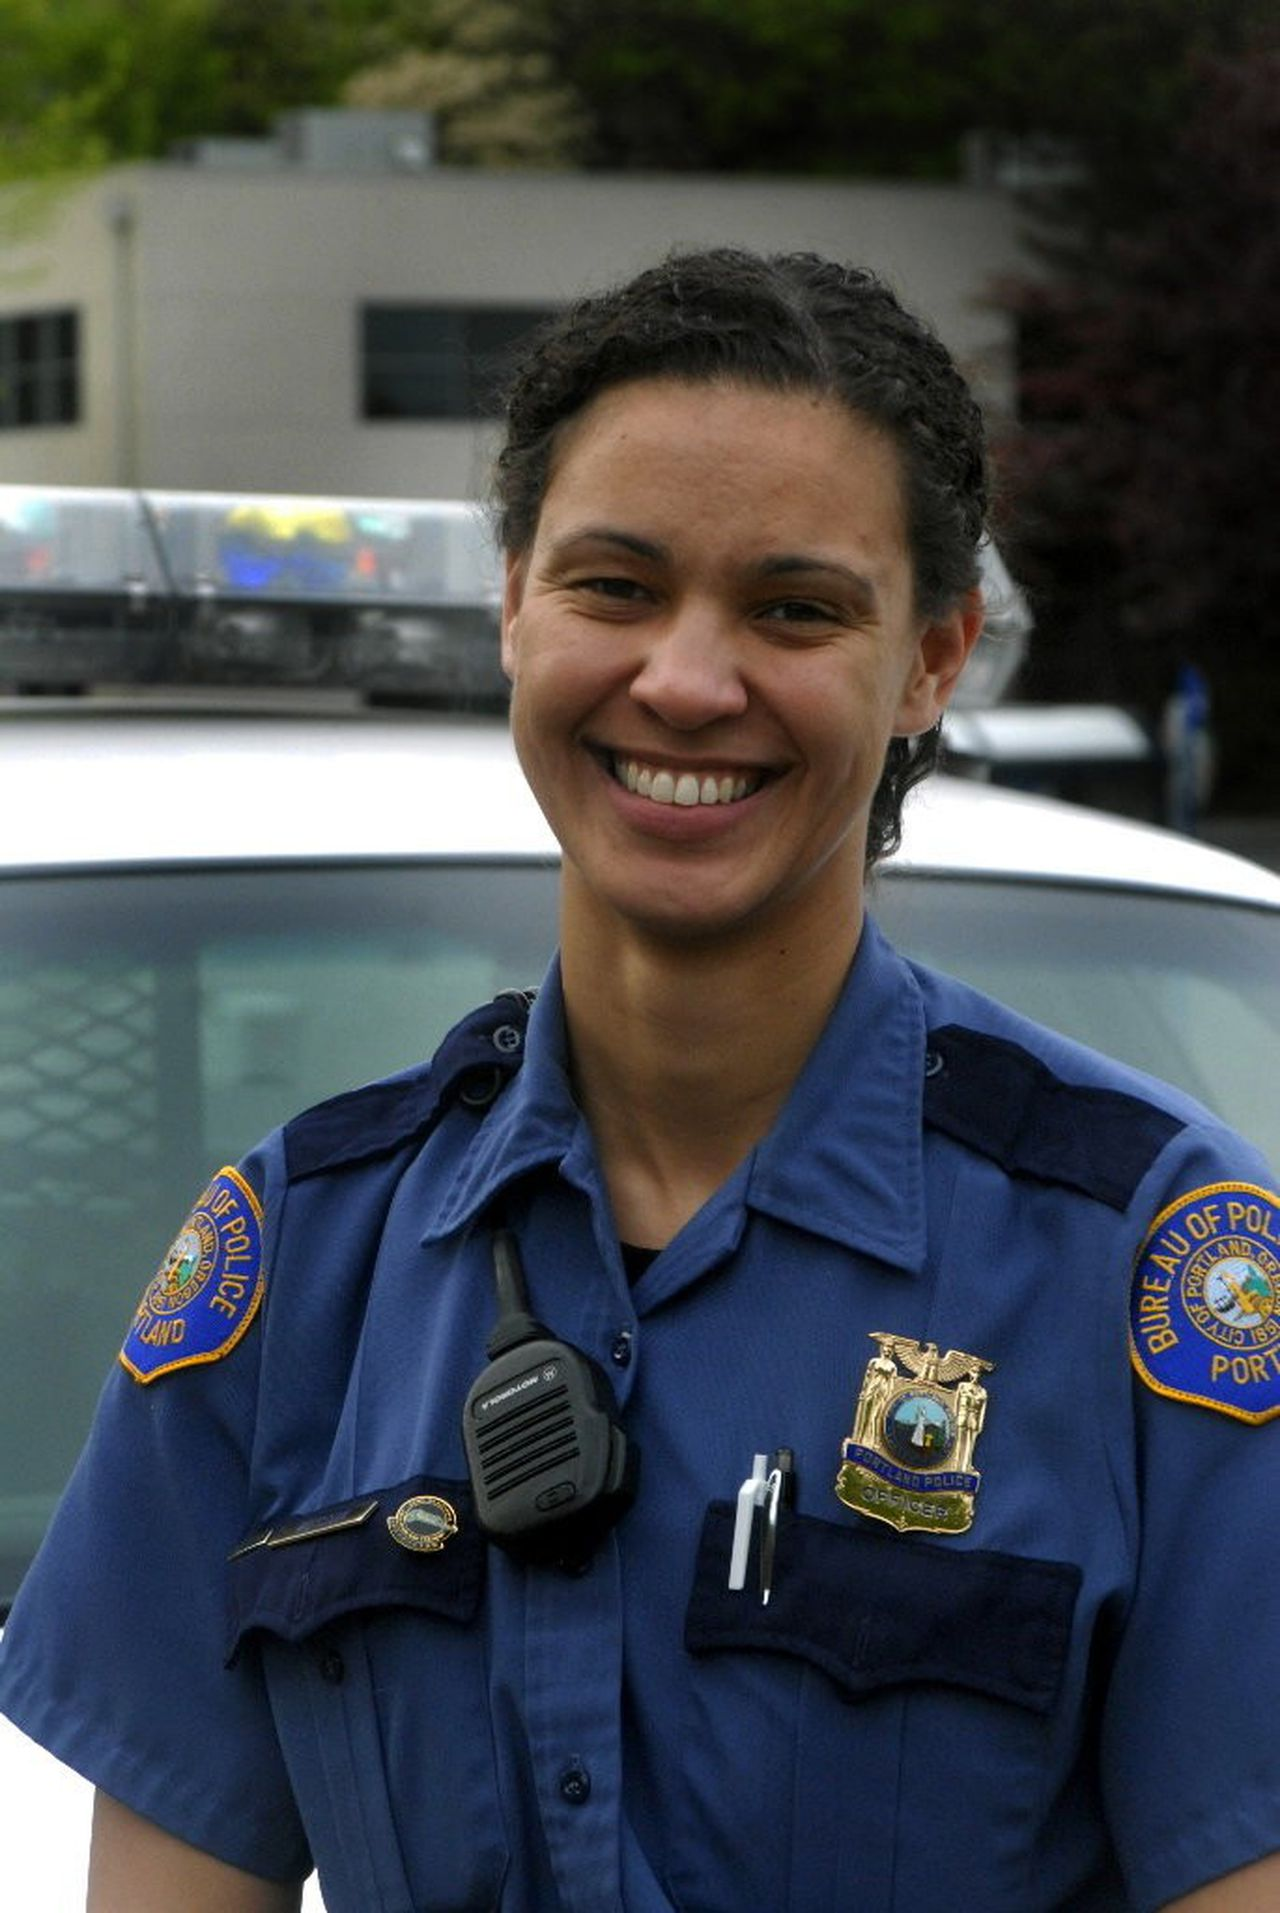 City Police Officer Salary Year